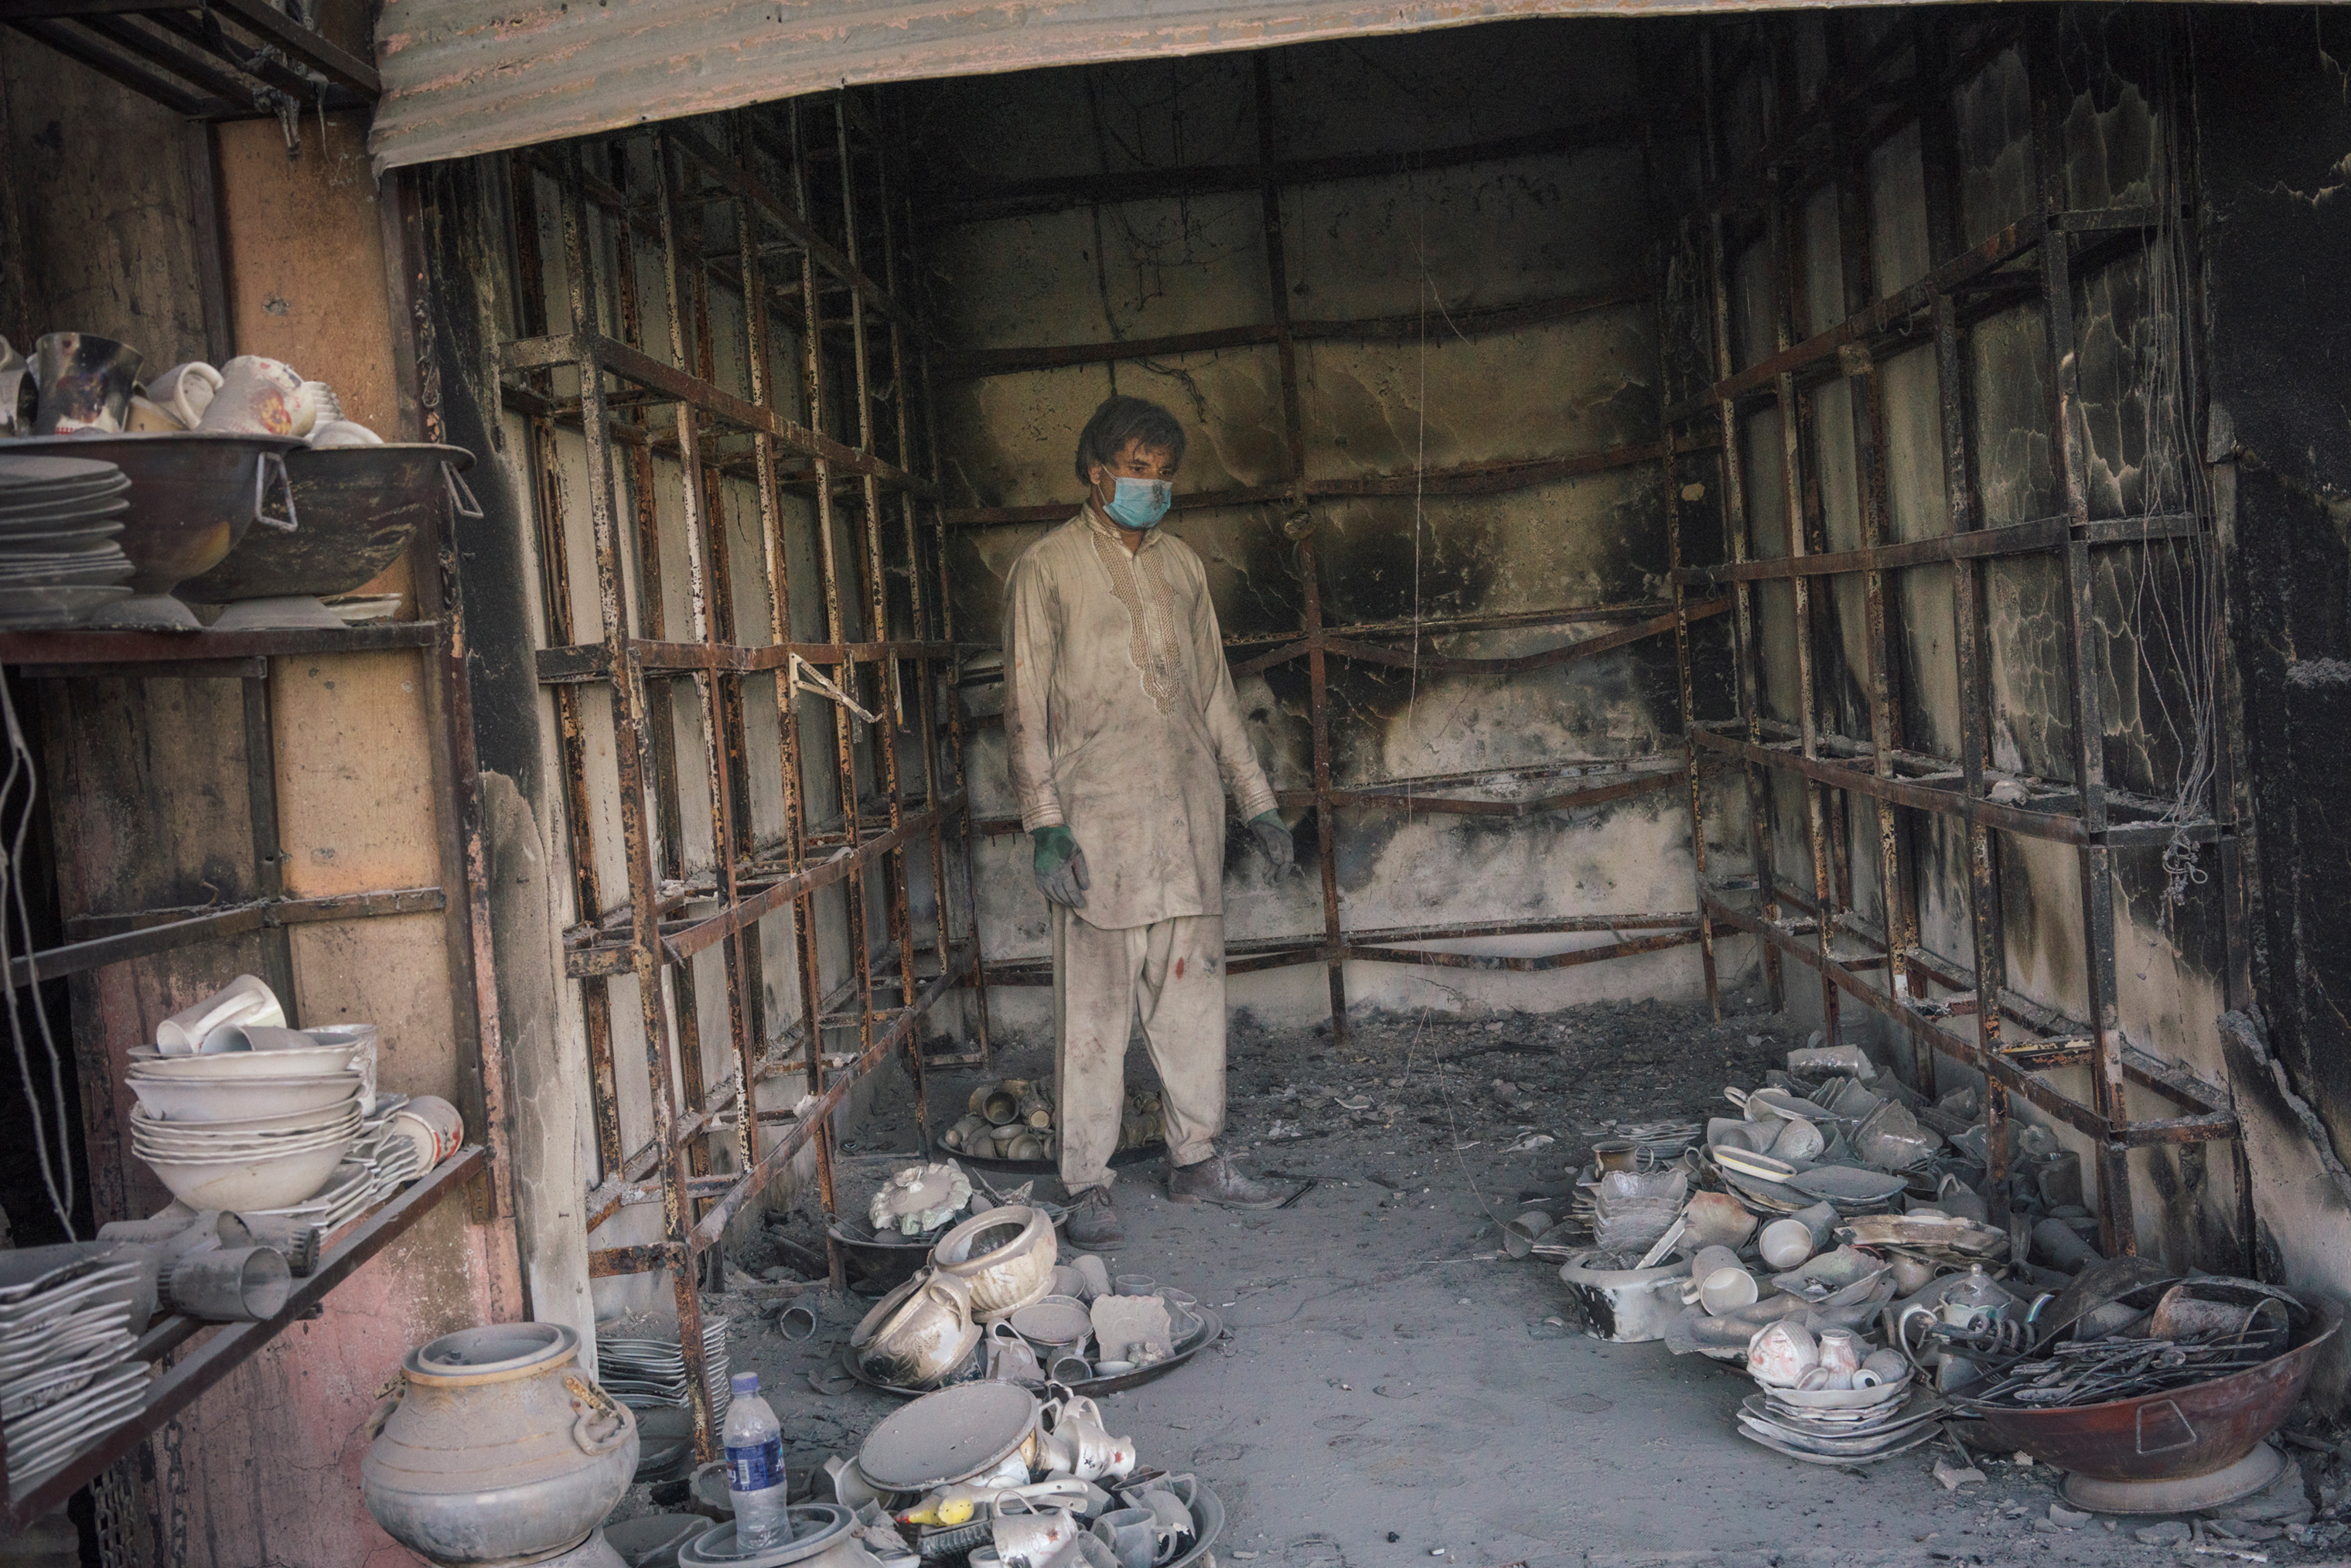 Nassarath Kadri, 27, inside his damaged shop in Ghazni on Aug. 16.